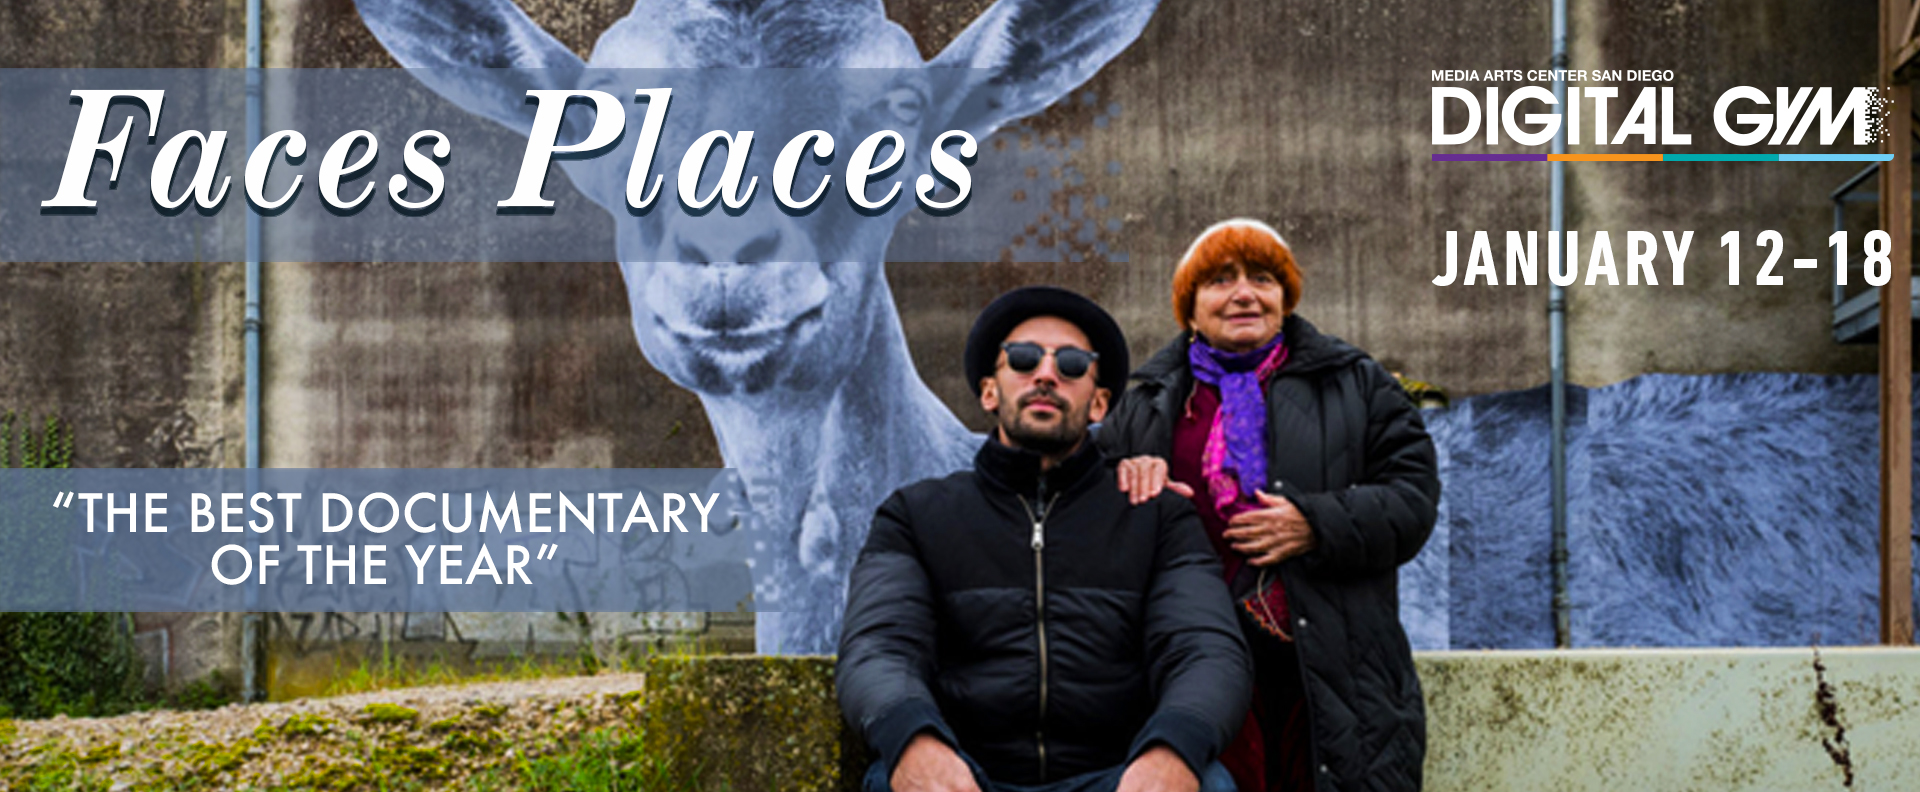 "French Cinema's icon Agnès Varda in ""FACES PLACES"" (Jan 5-11, 12-18)"